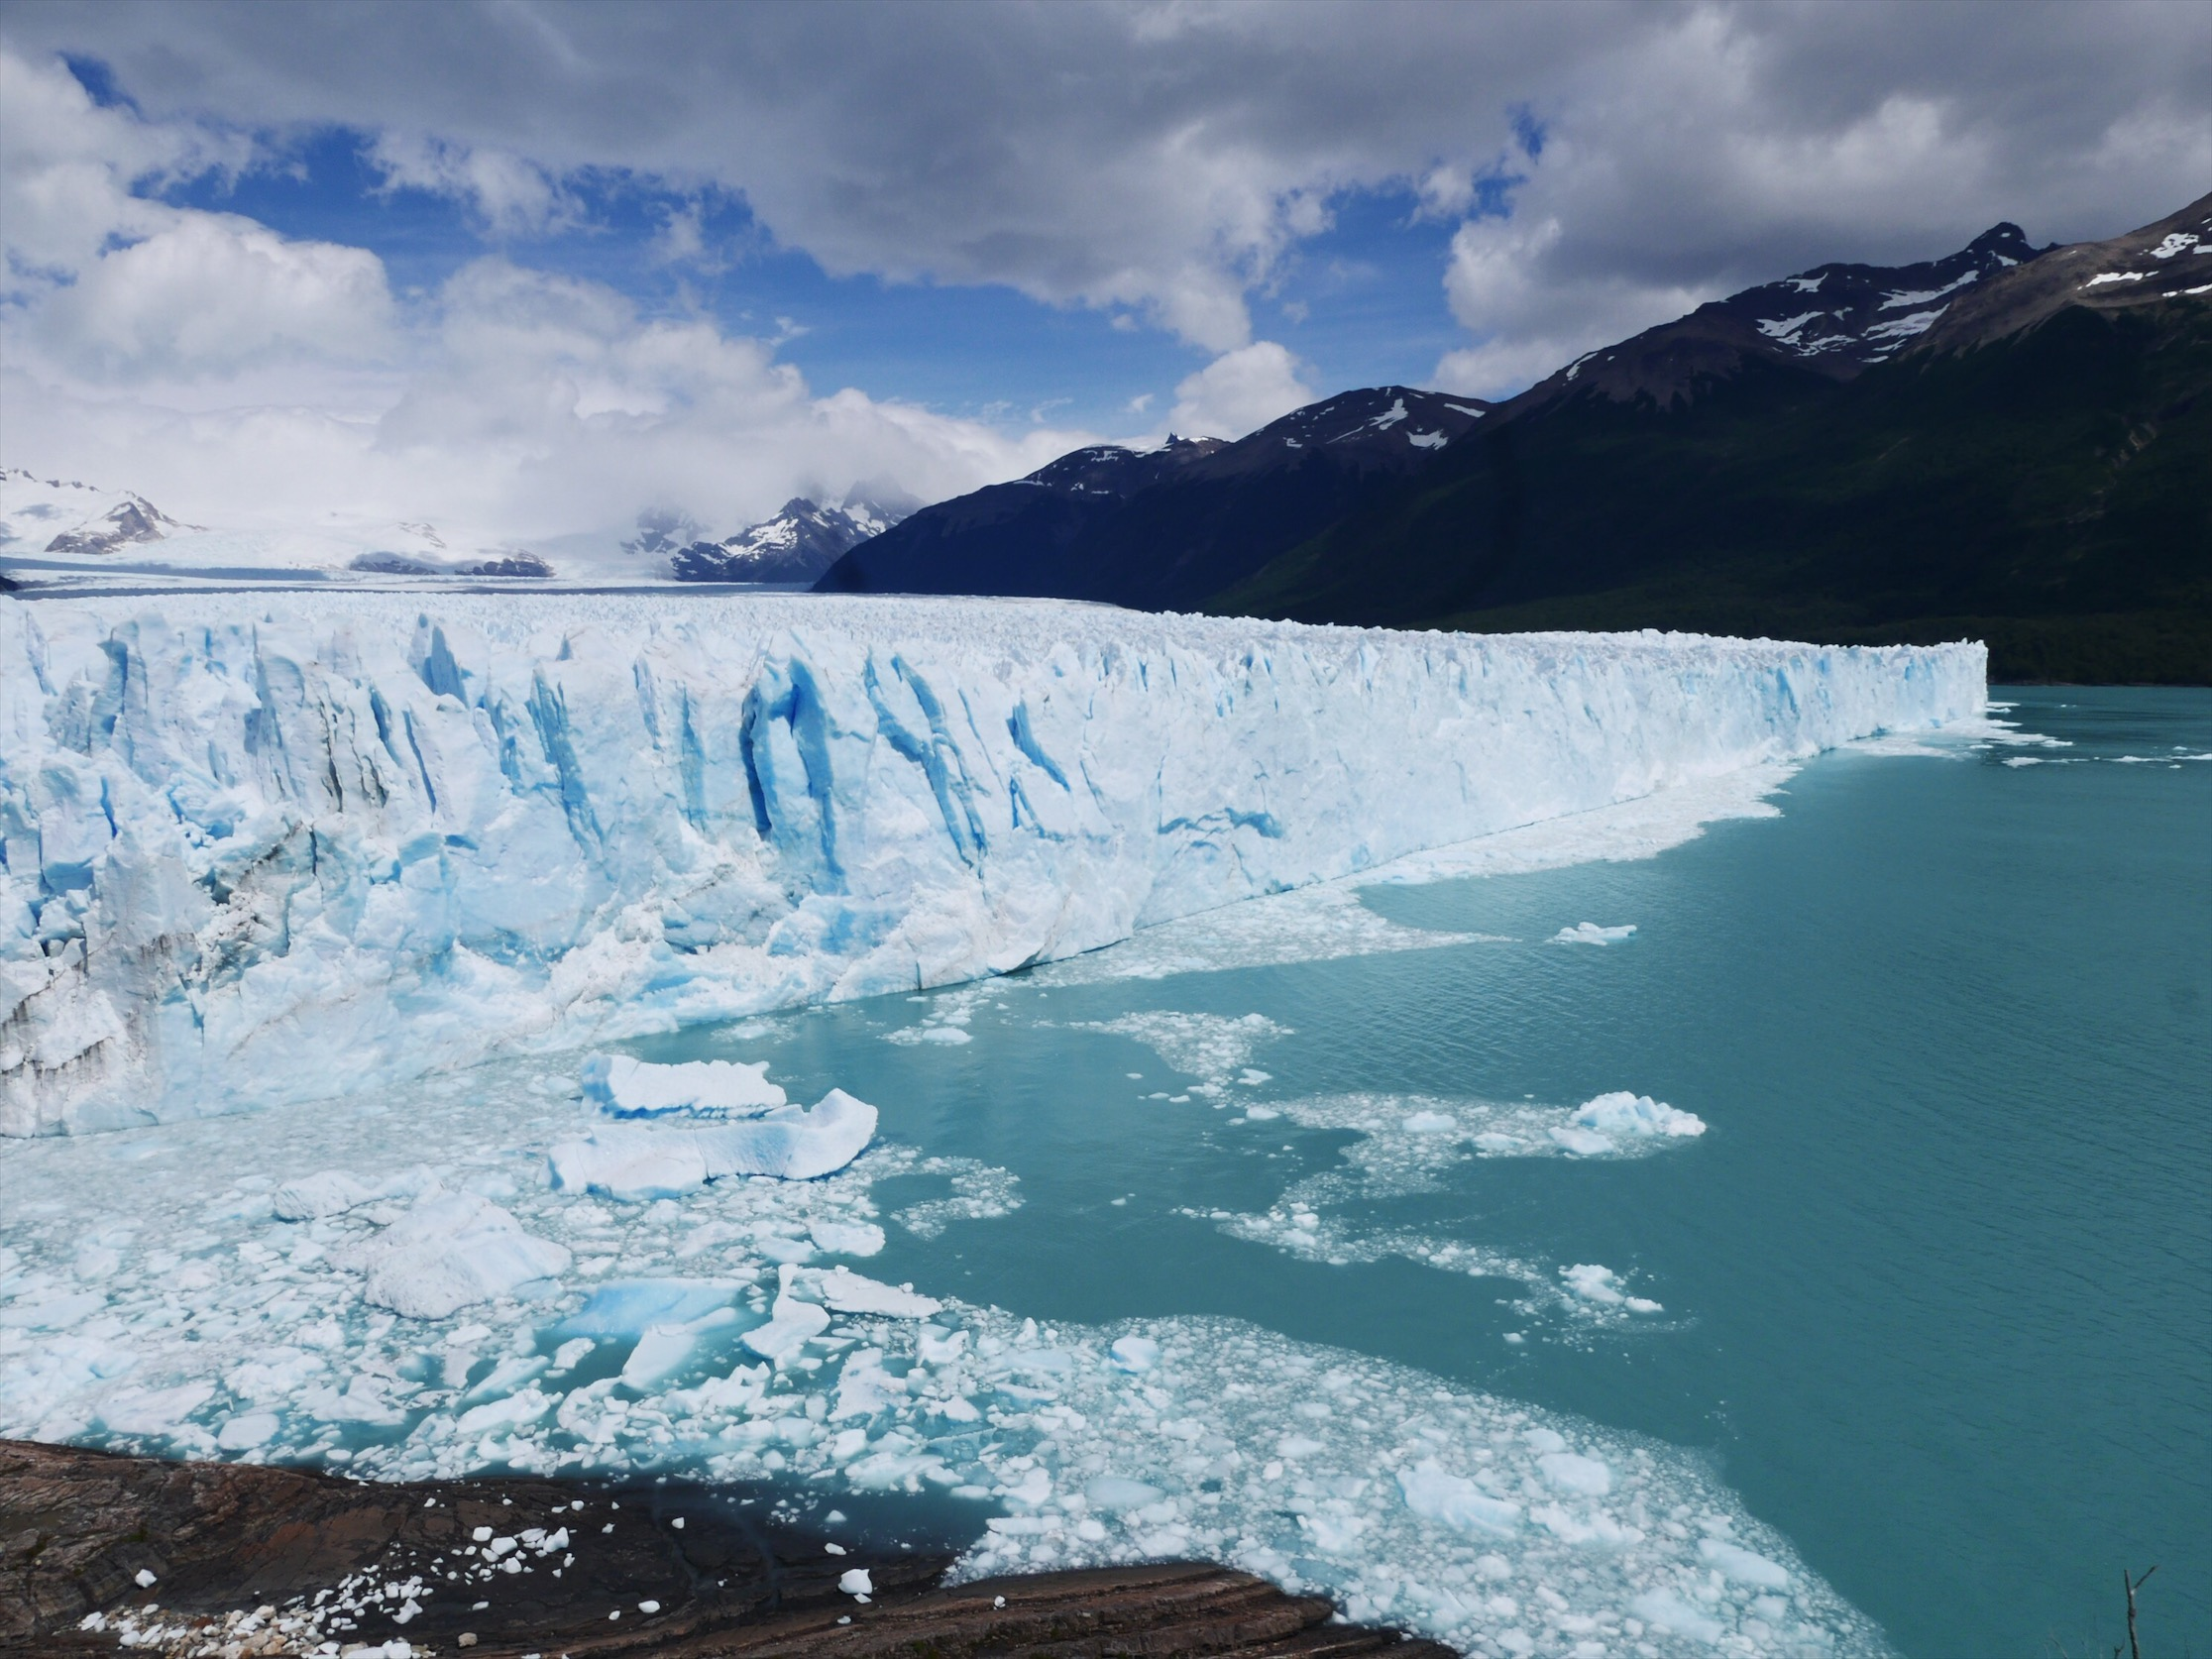 Another incredible Patagonian attraction. The Perito Moreno glacier delivers as a spectacle. Warm temps and flowing rivers meant the glacier was especially active. Platforms allow for easy up-close viewing as massive 100-foot tall chunks calve off on cue. Keep an eye out for footage from the 1000+ Gore-Texans pointing their wide angle GoPros at the glacier. Sound on for commentary.